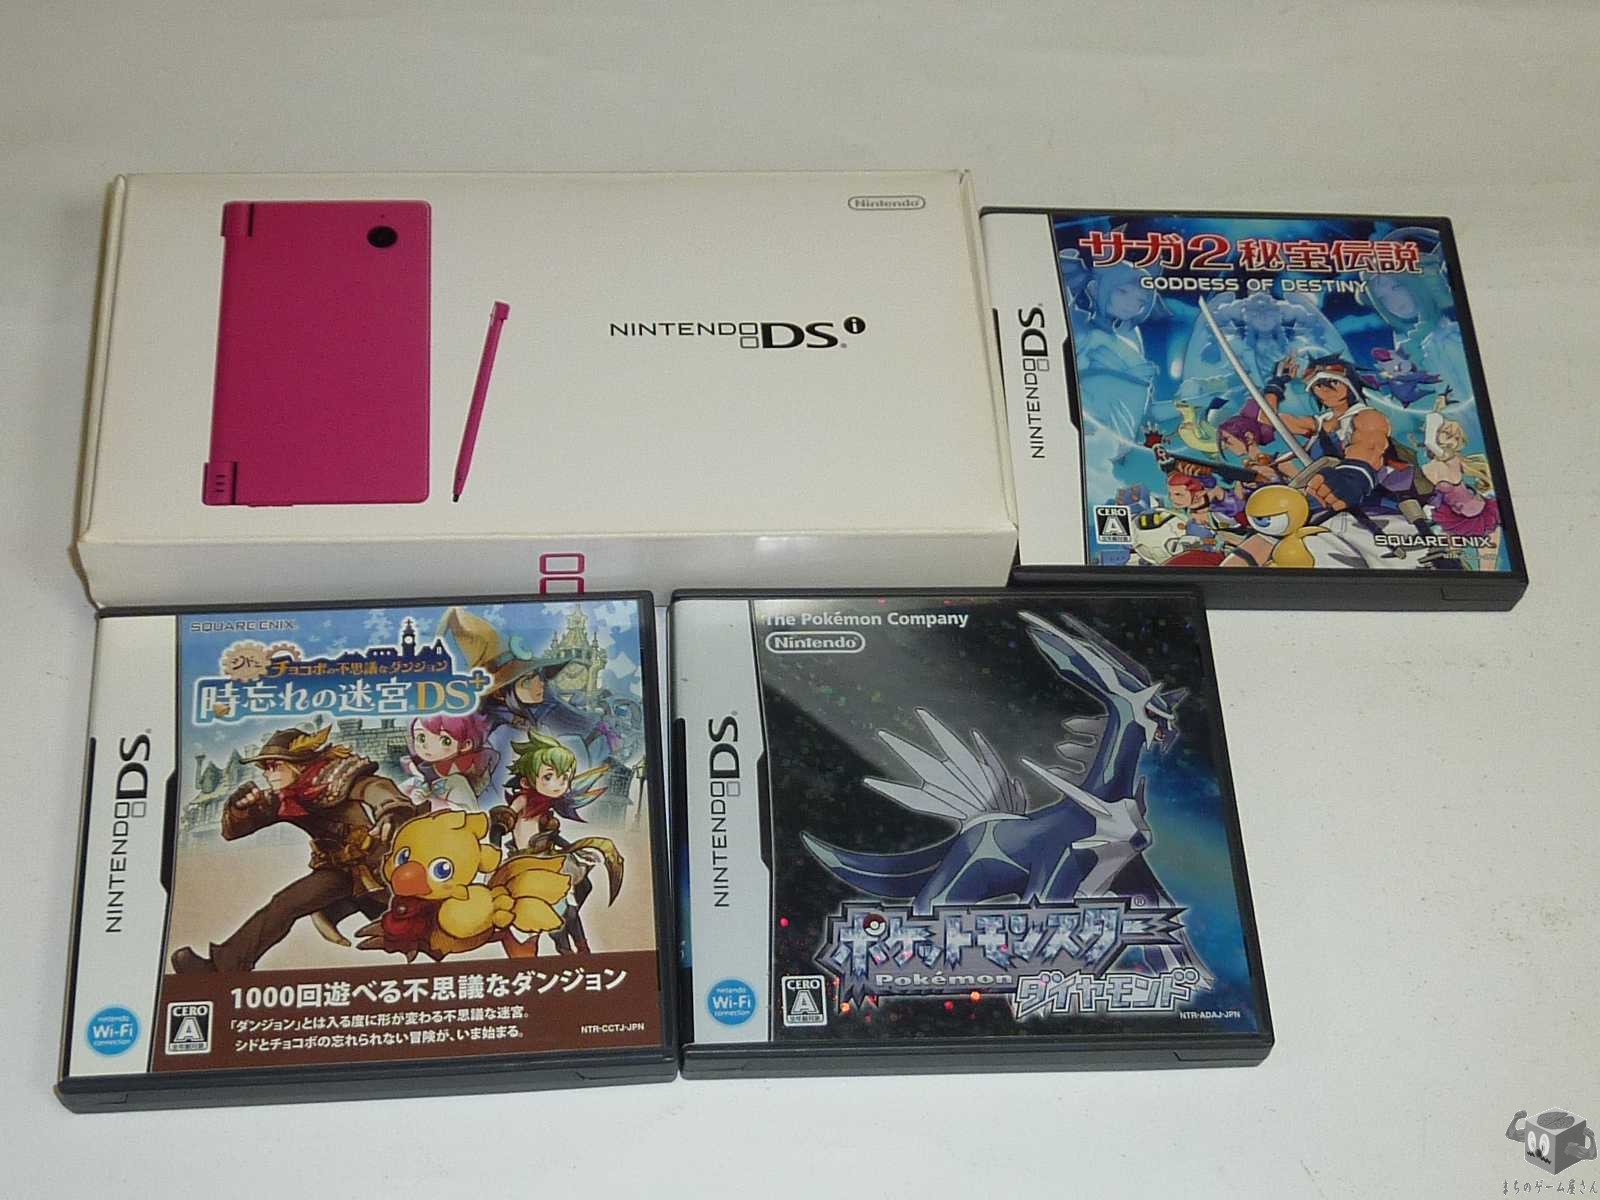 [DS] Console Nintendo DSi Pink TWL-001 System